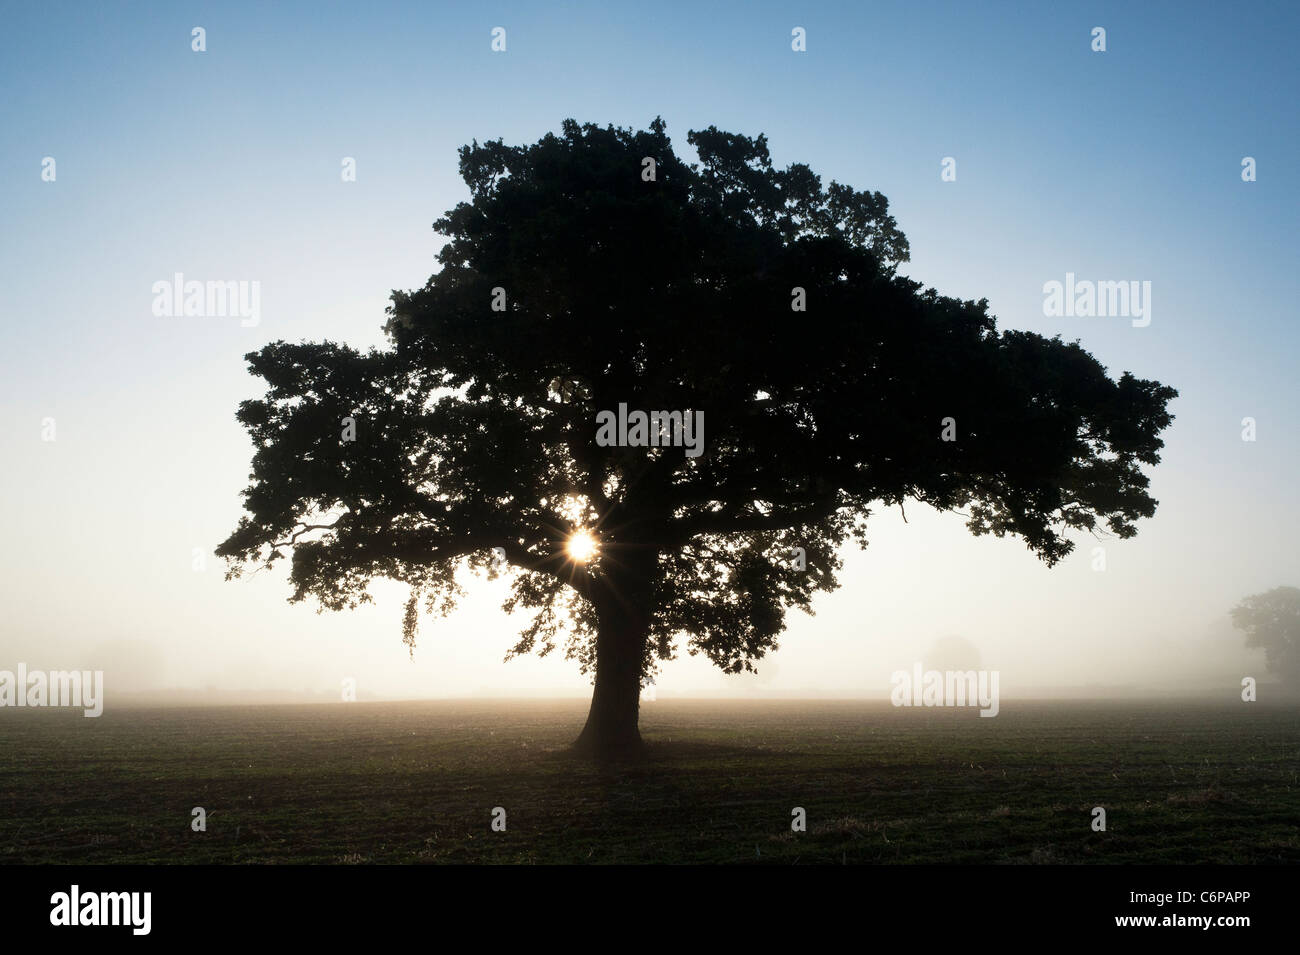 Quercus. Oak Tree silhouette at sunrise in the English morning mist - Stock Image